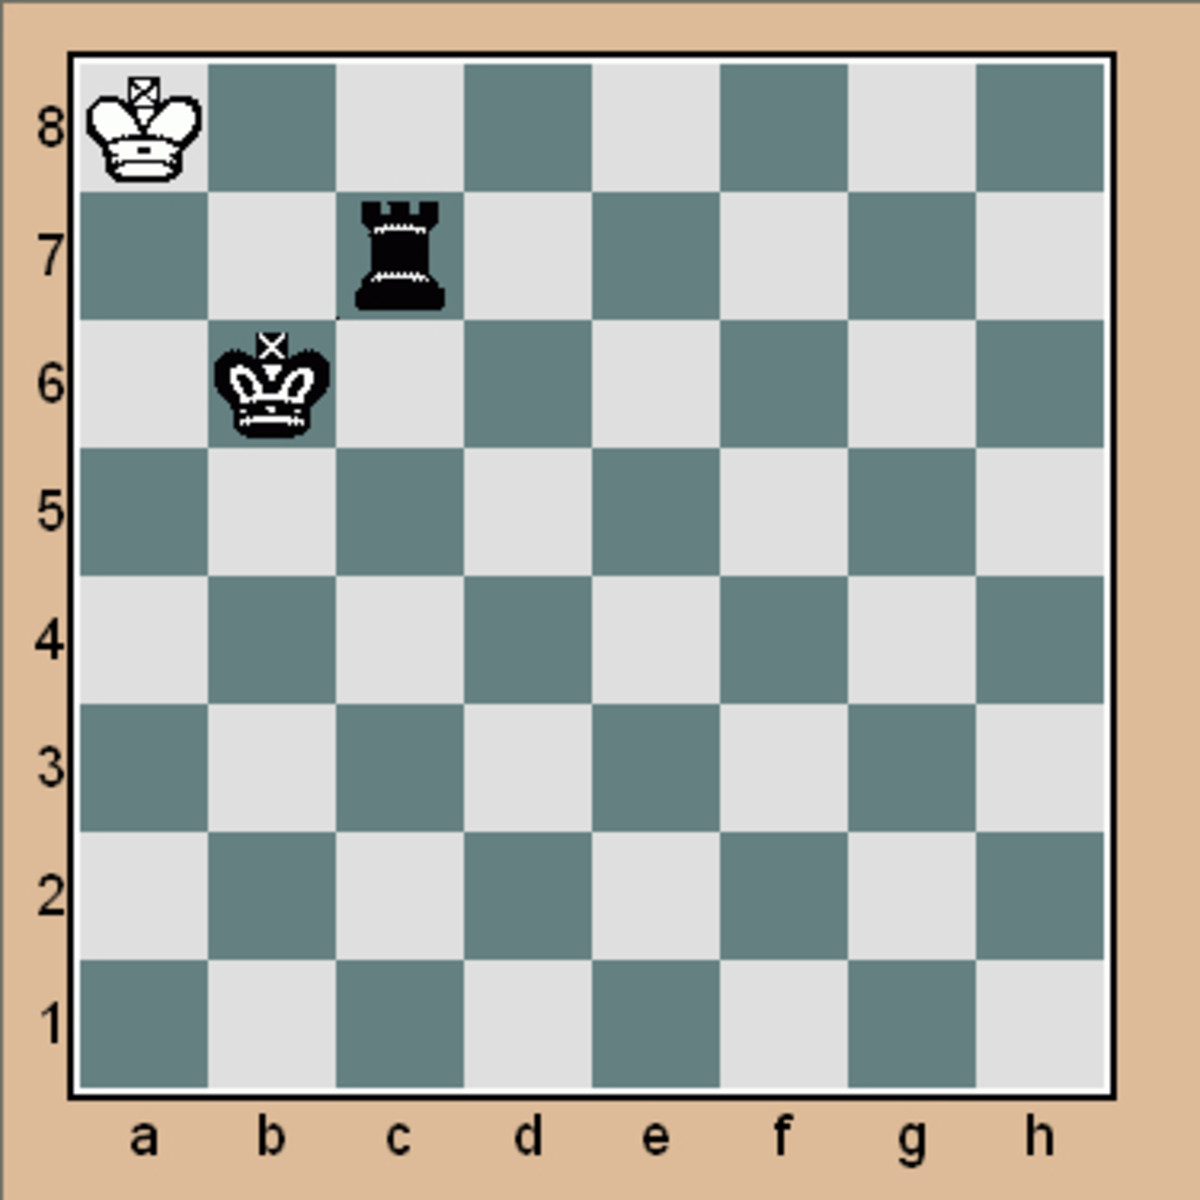 Please scroll down to see the mate in 1 chess puzzles.